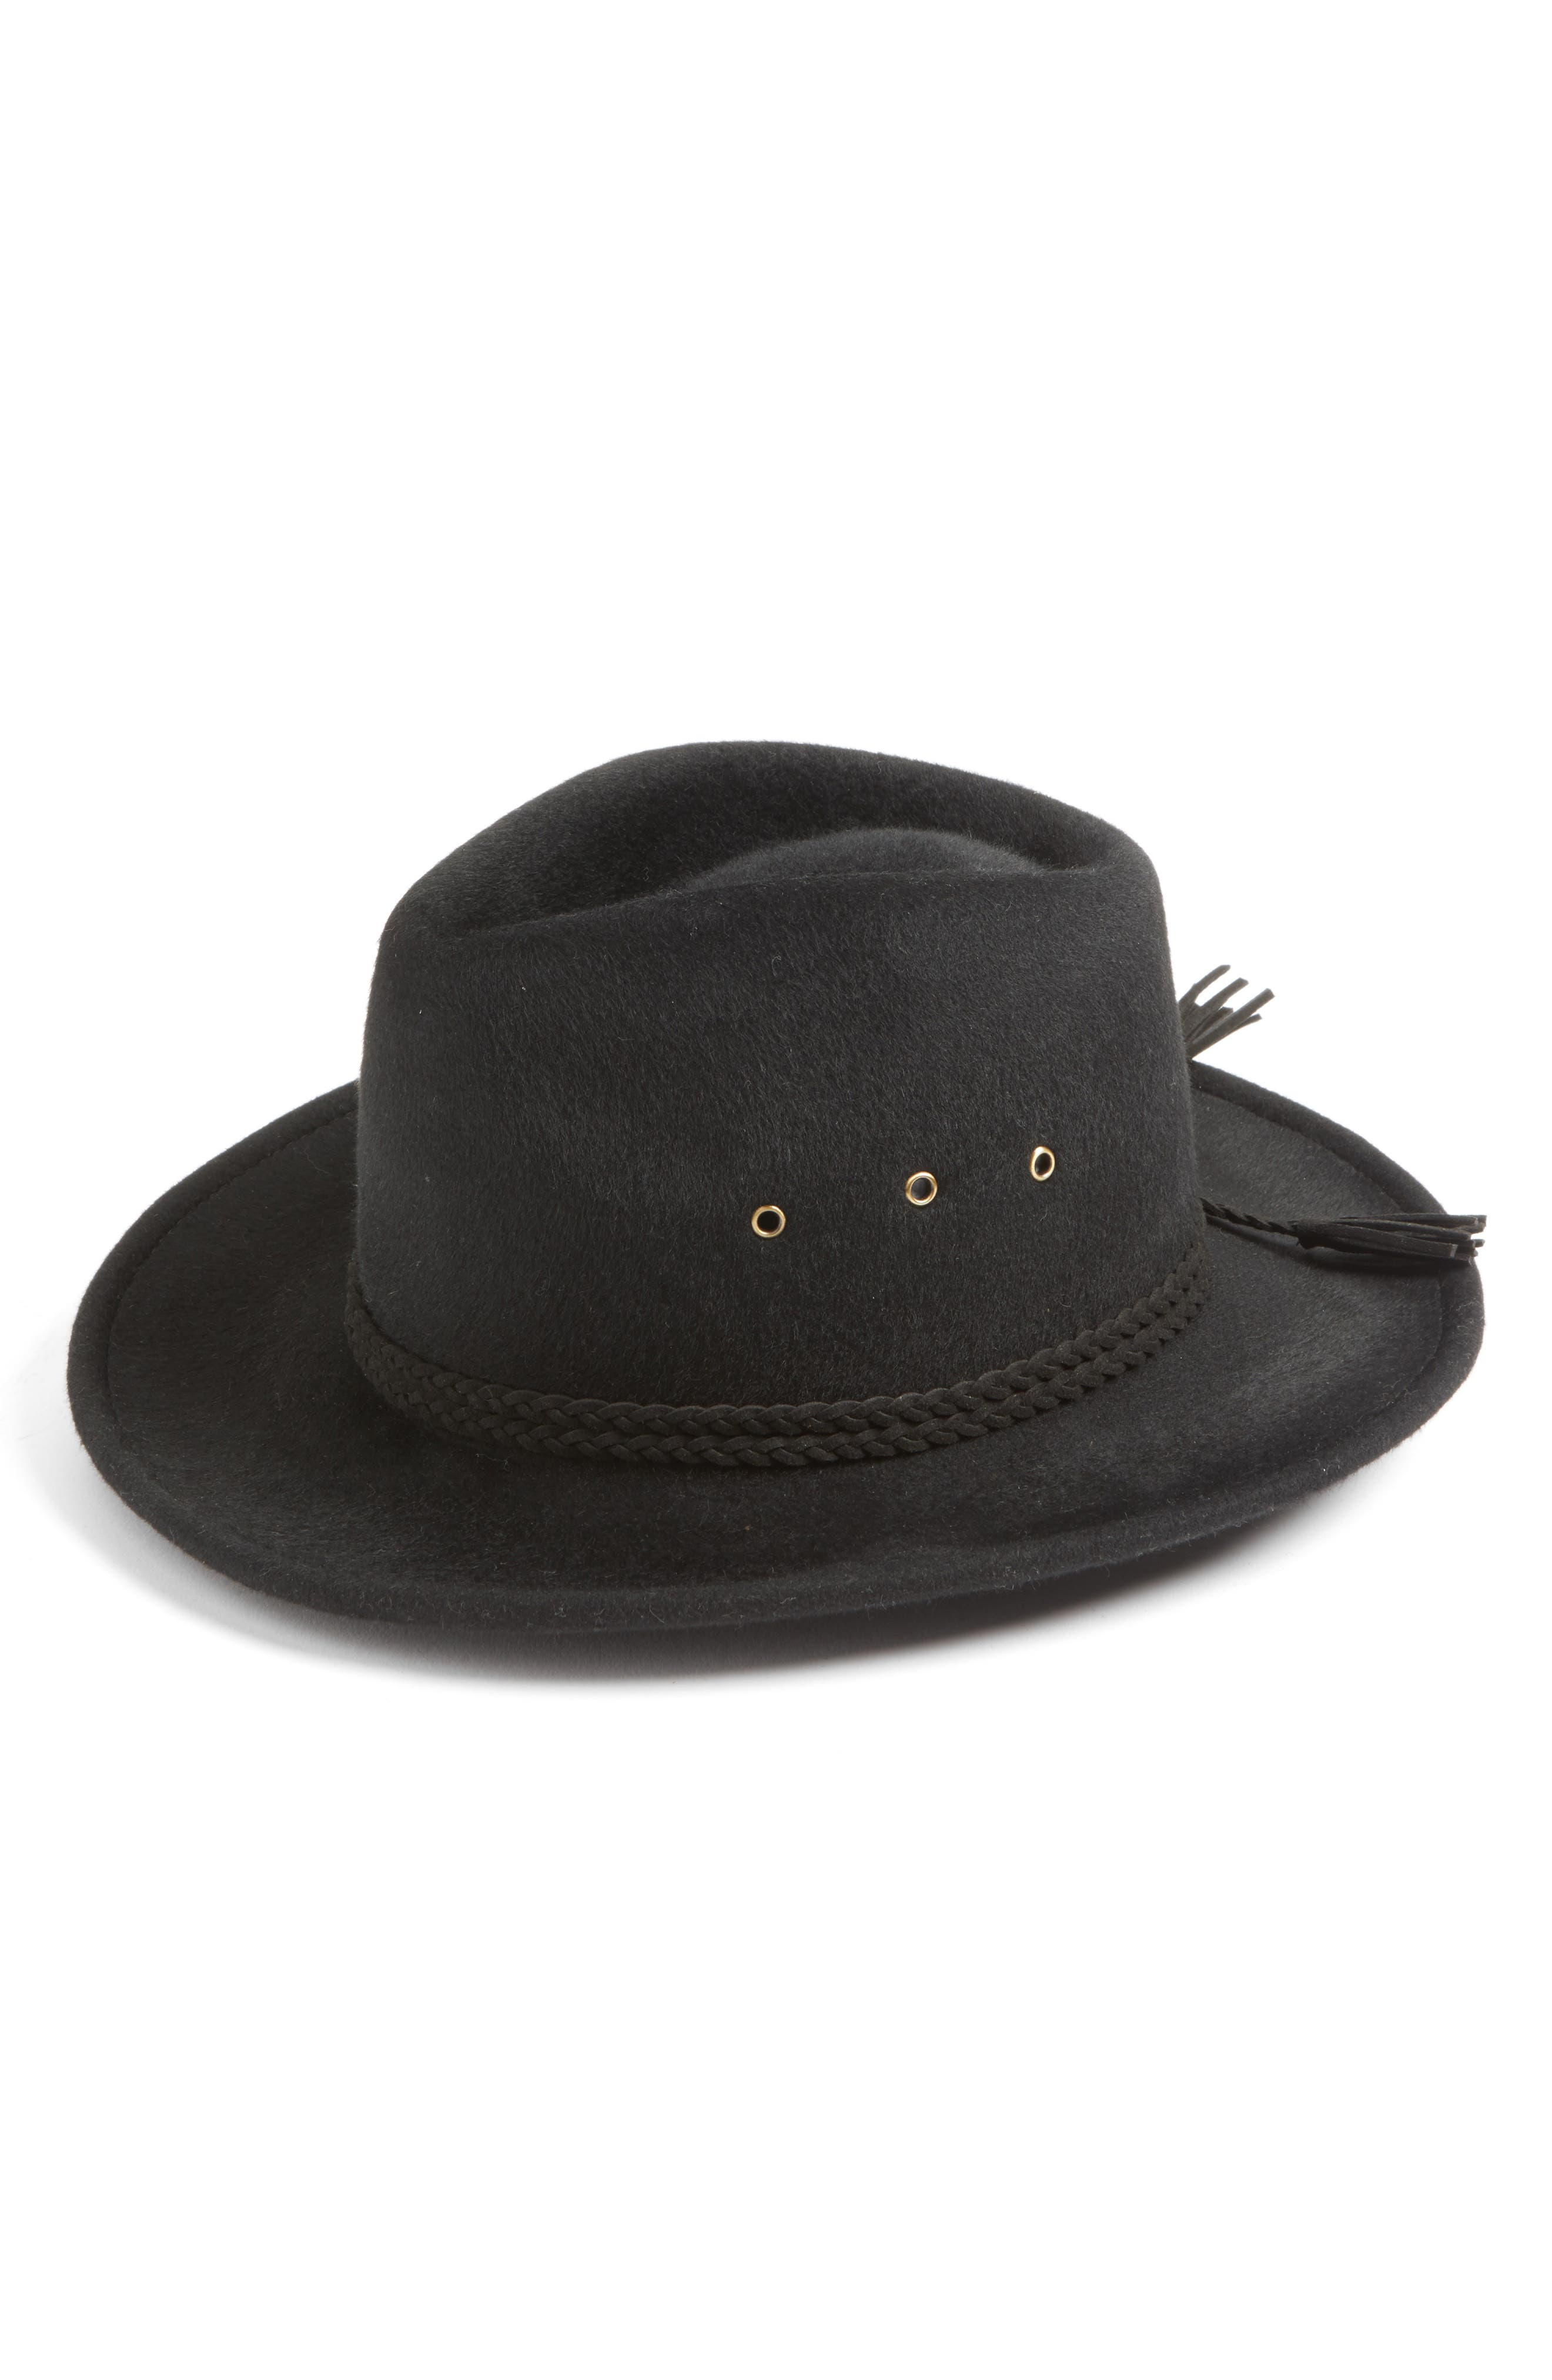 Stanwyck Wool Felt Fedora,                         Main,                         color, Black